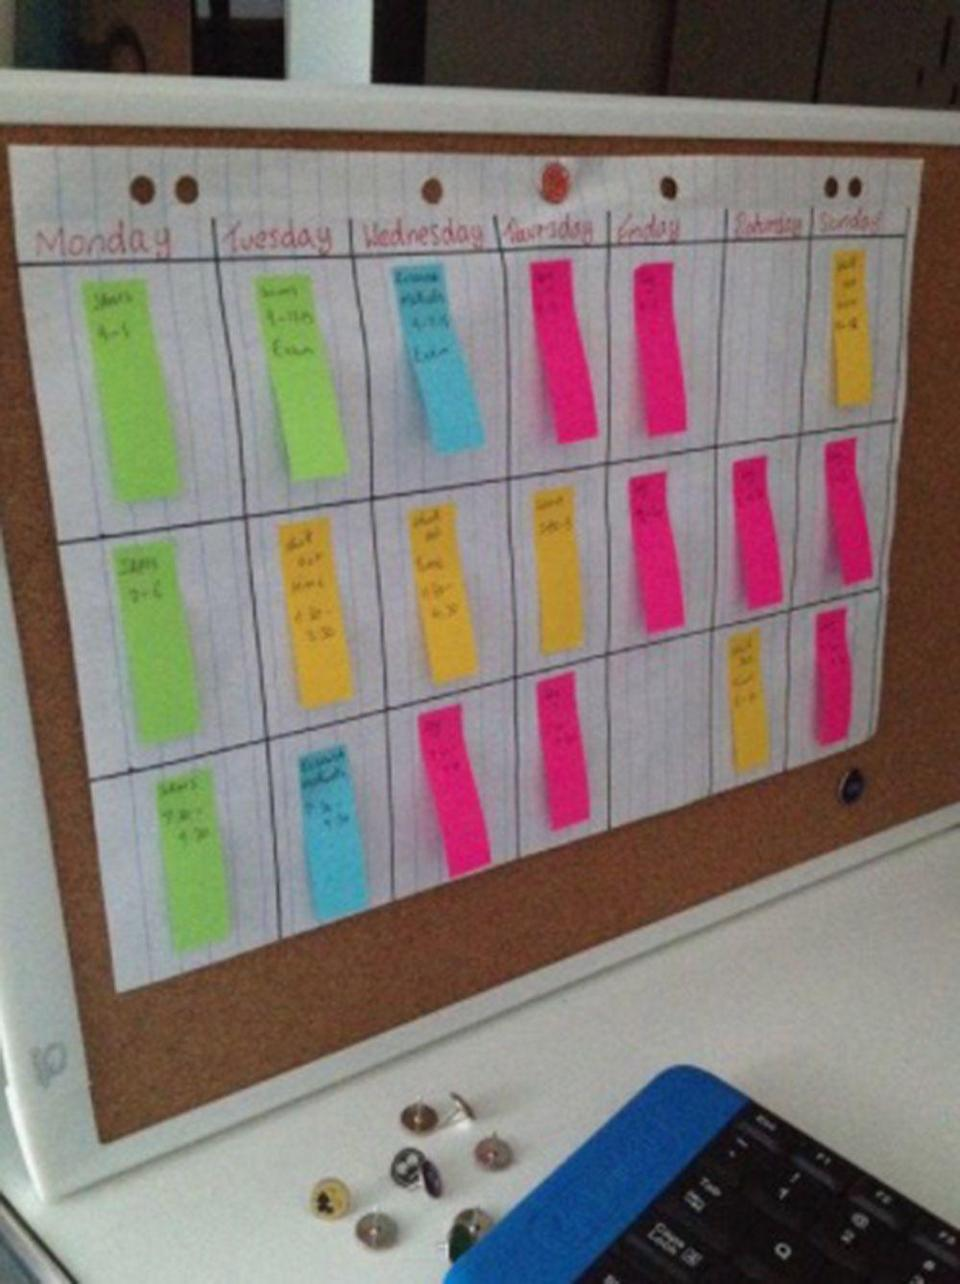 """<p>Use sticky notes instead of writing on your calendar so you can not only reuse it, but be flexible with your commitments and when you complete what.</p><p>(<a href=""""https://www.pinterest.co.uk/pin/486177722247799272/"""" rel=""""nofollow noopener"""" target=""""_blank"""" data-ylk=""""slk:via"""" class=""""link rapid-noclick-resp"""">via</a>)</p>"""